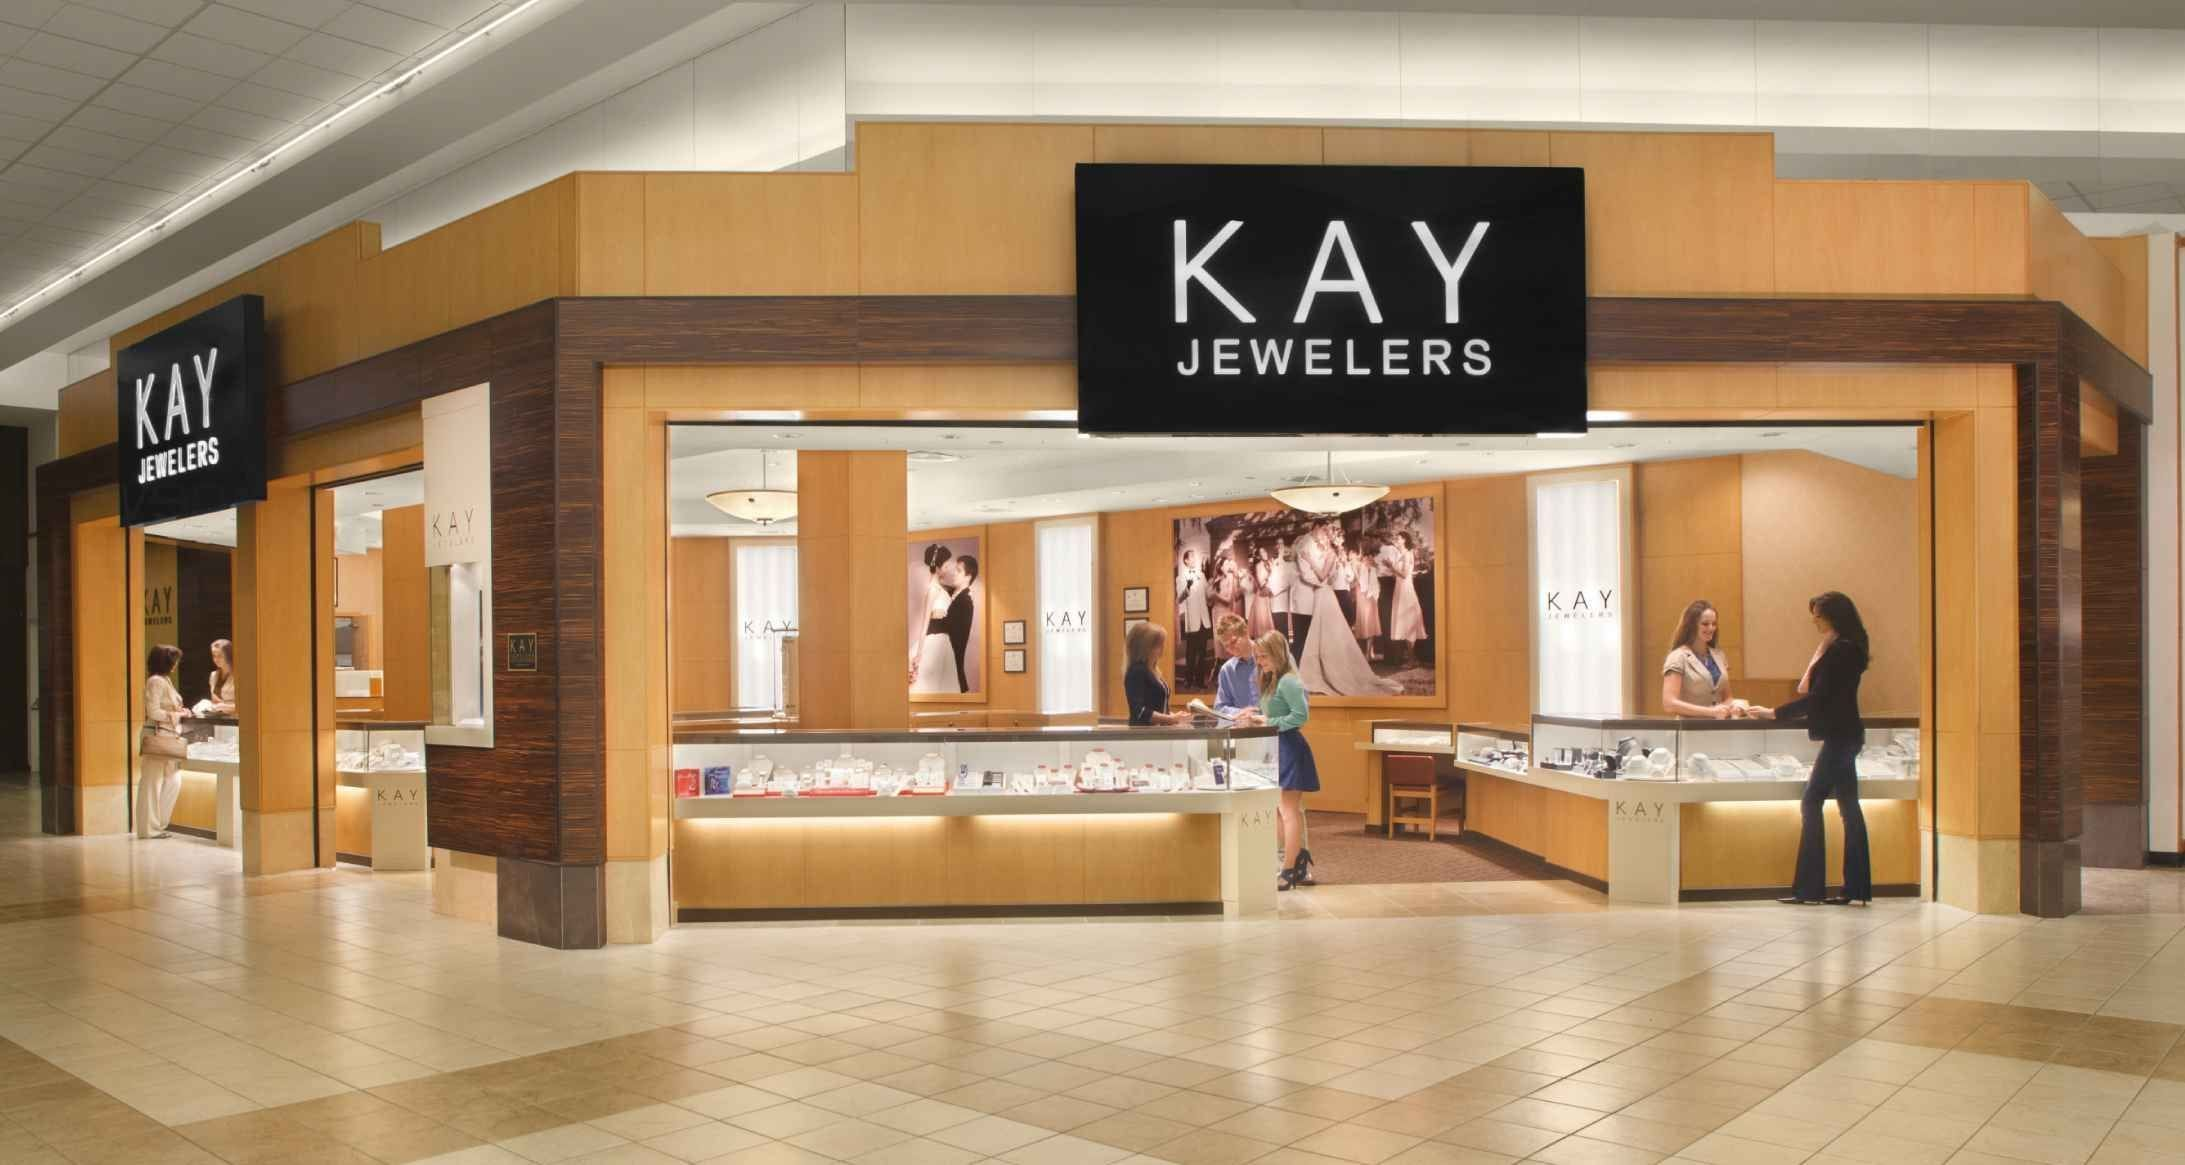 Report sex demanded for promotions at kay jared for Jared jewelry store website